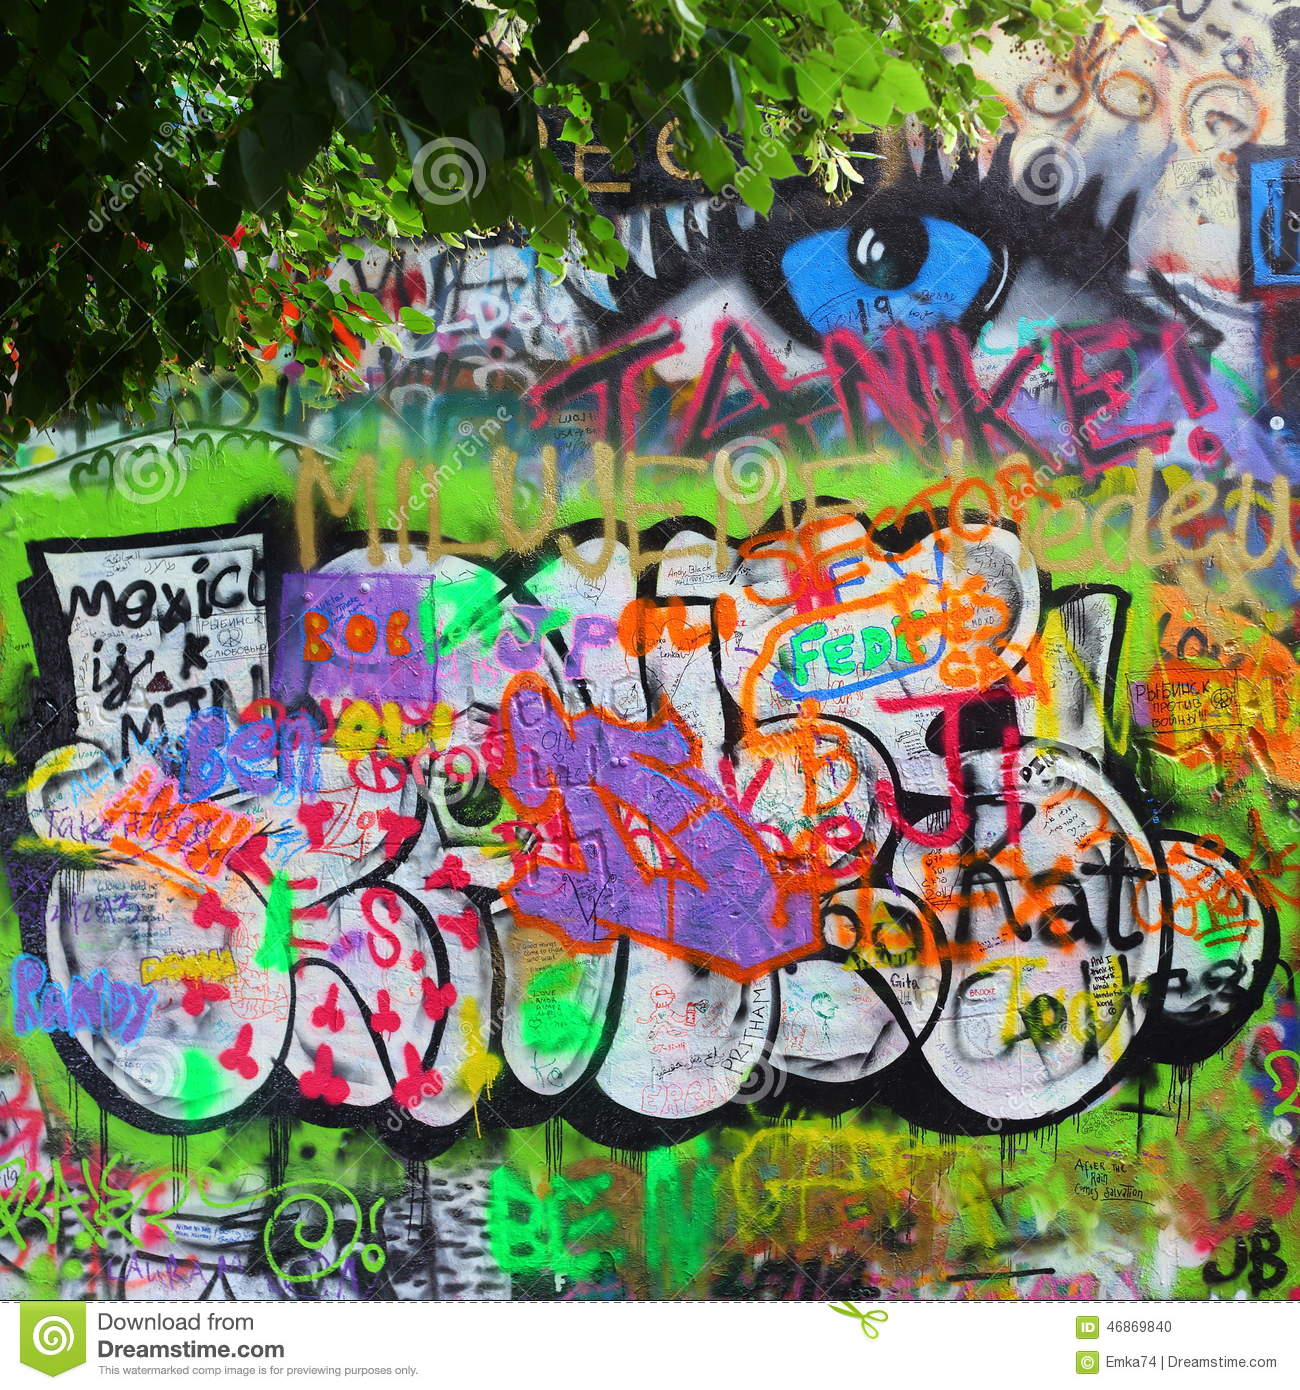 John lennon wall since the 1980s filled with john lennon inspired graffiti and pieces of lyrics from beatles songs on october 21 2010 in prague